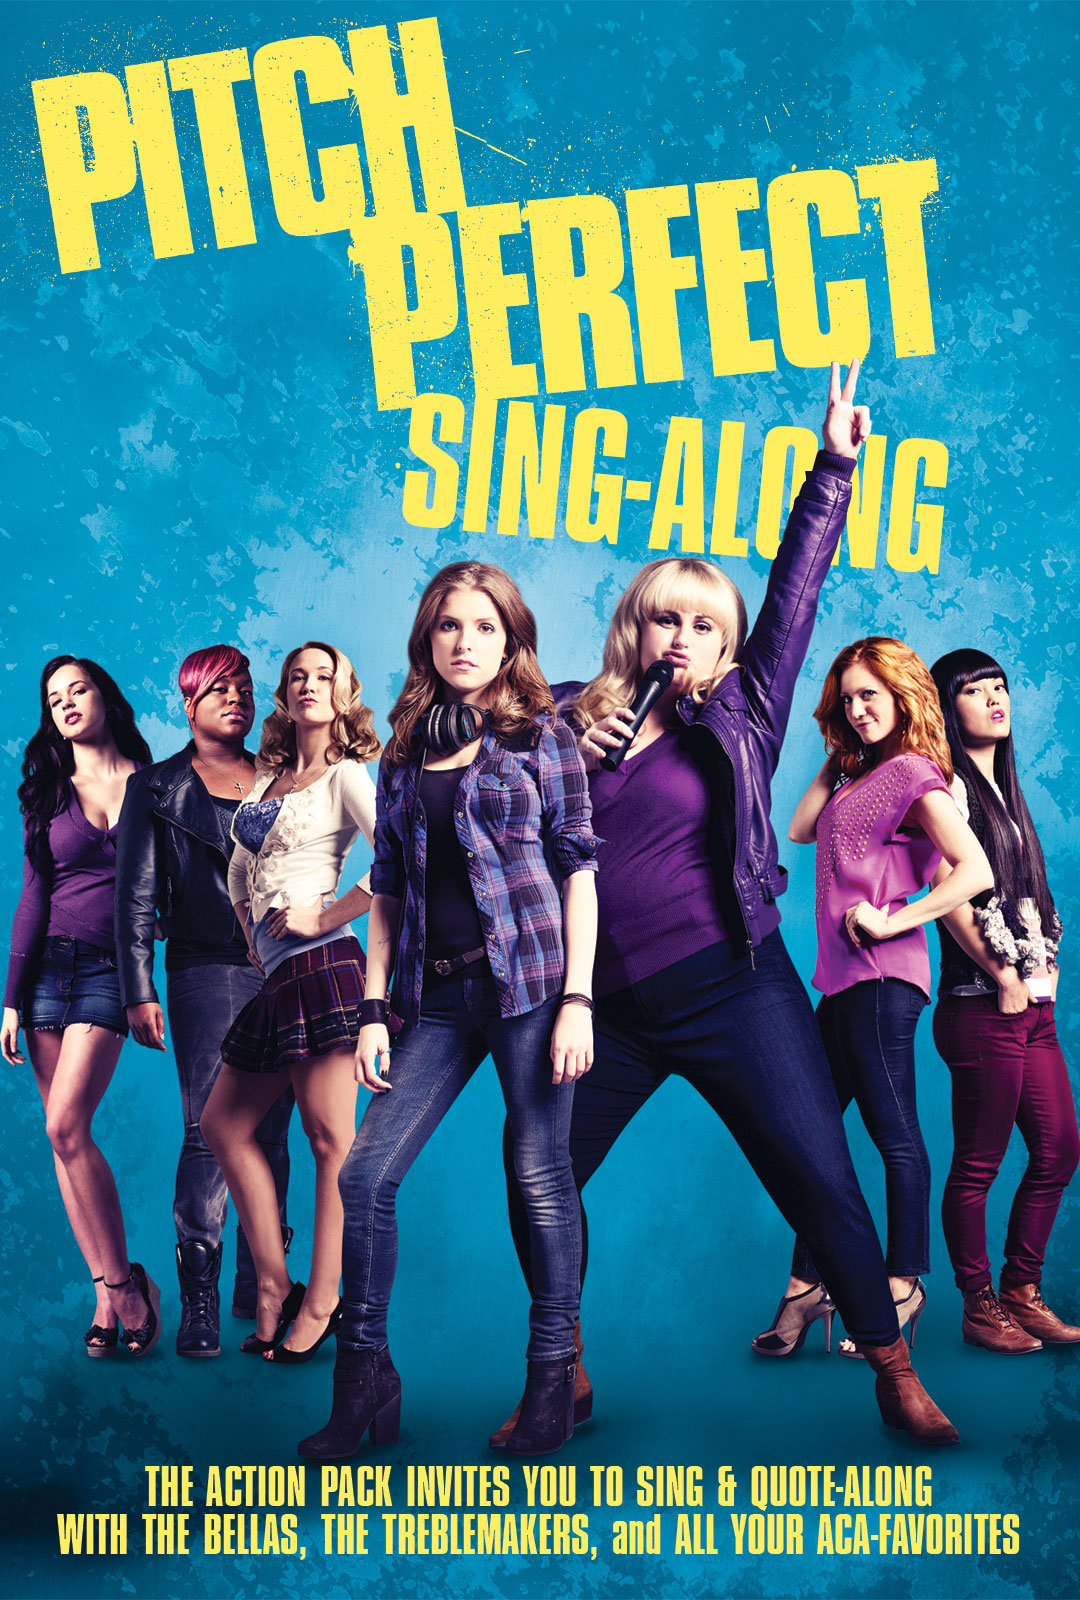 Action Pack PITCH PERFECT Sing-Along | Austin | Alamo Drafthouse.